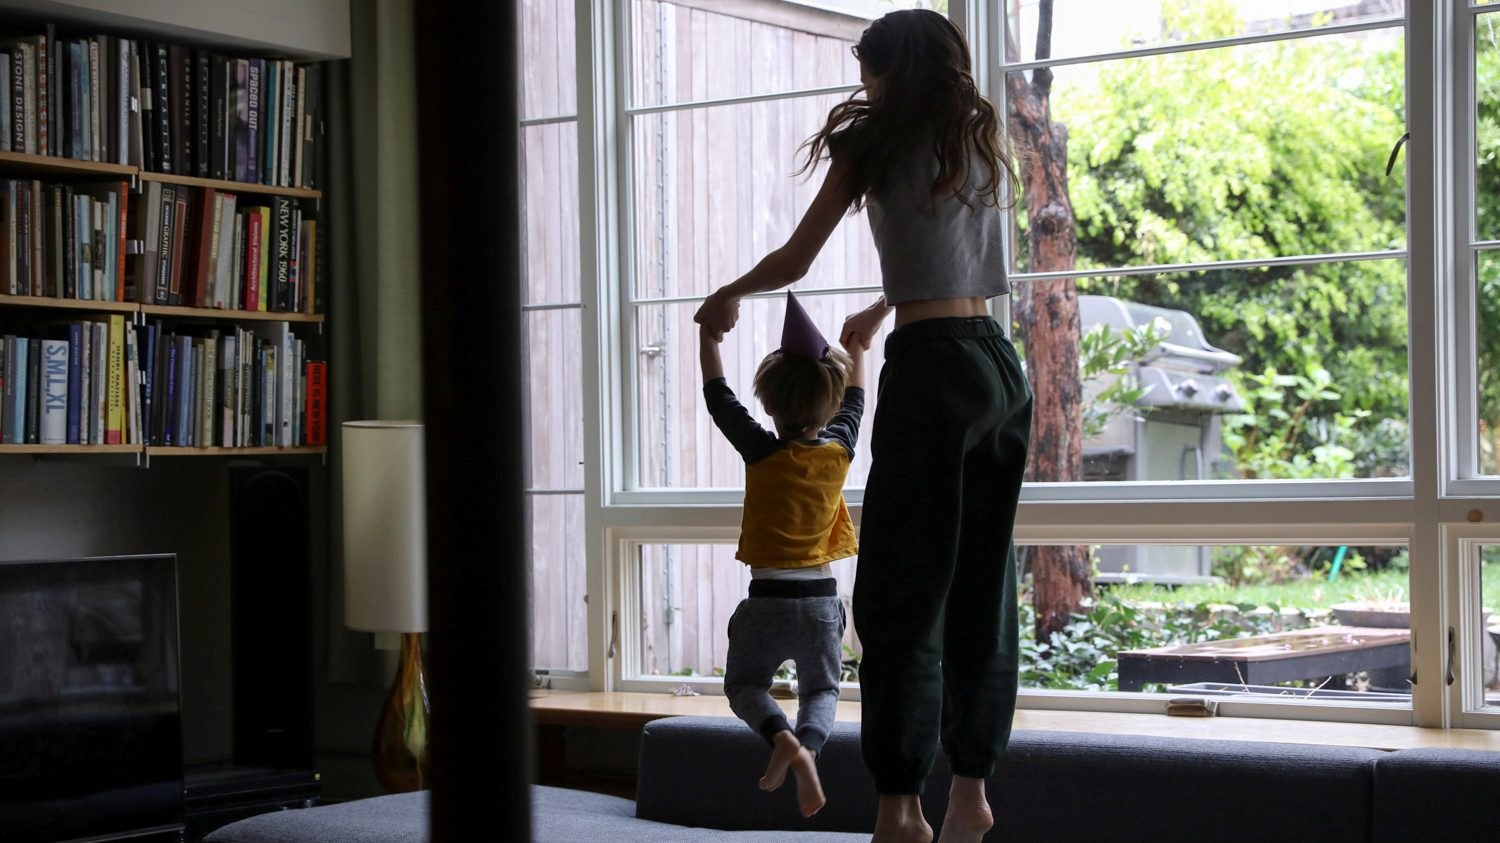 A woman wearing a grey t-shirt and black sweatpants jumps on a blue L-shaped couch with a young boy wearing a paper cone birthday hat. His hands are holding hers and they are both jumping in the air facing a large window. A wooden shed and grill is visible in the yard.